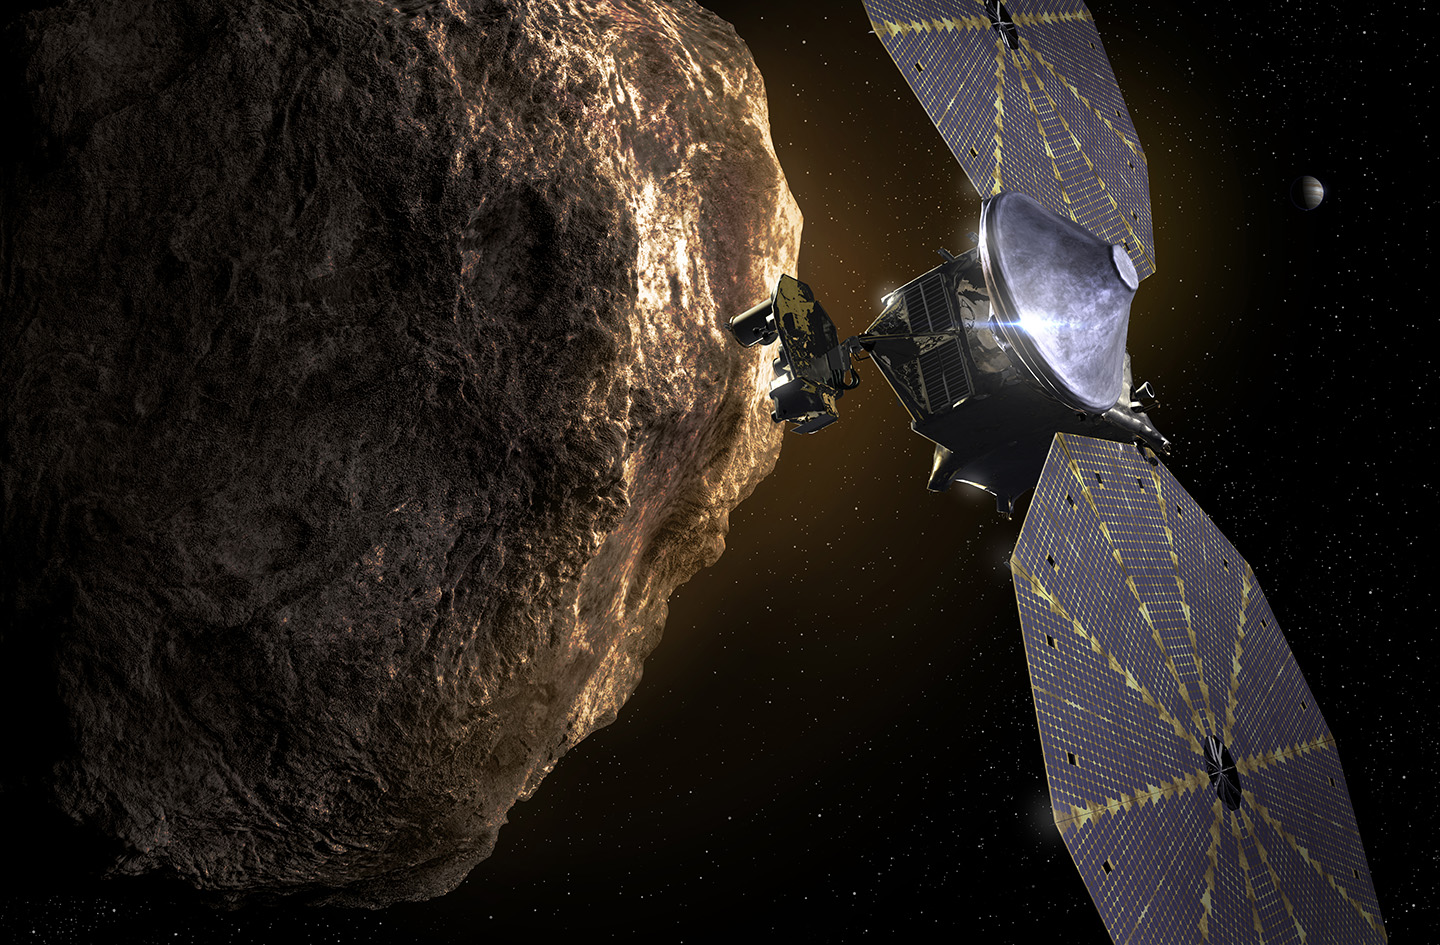 the lucy spacecraft passes a trojan asteroid